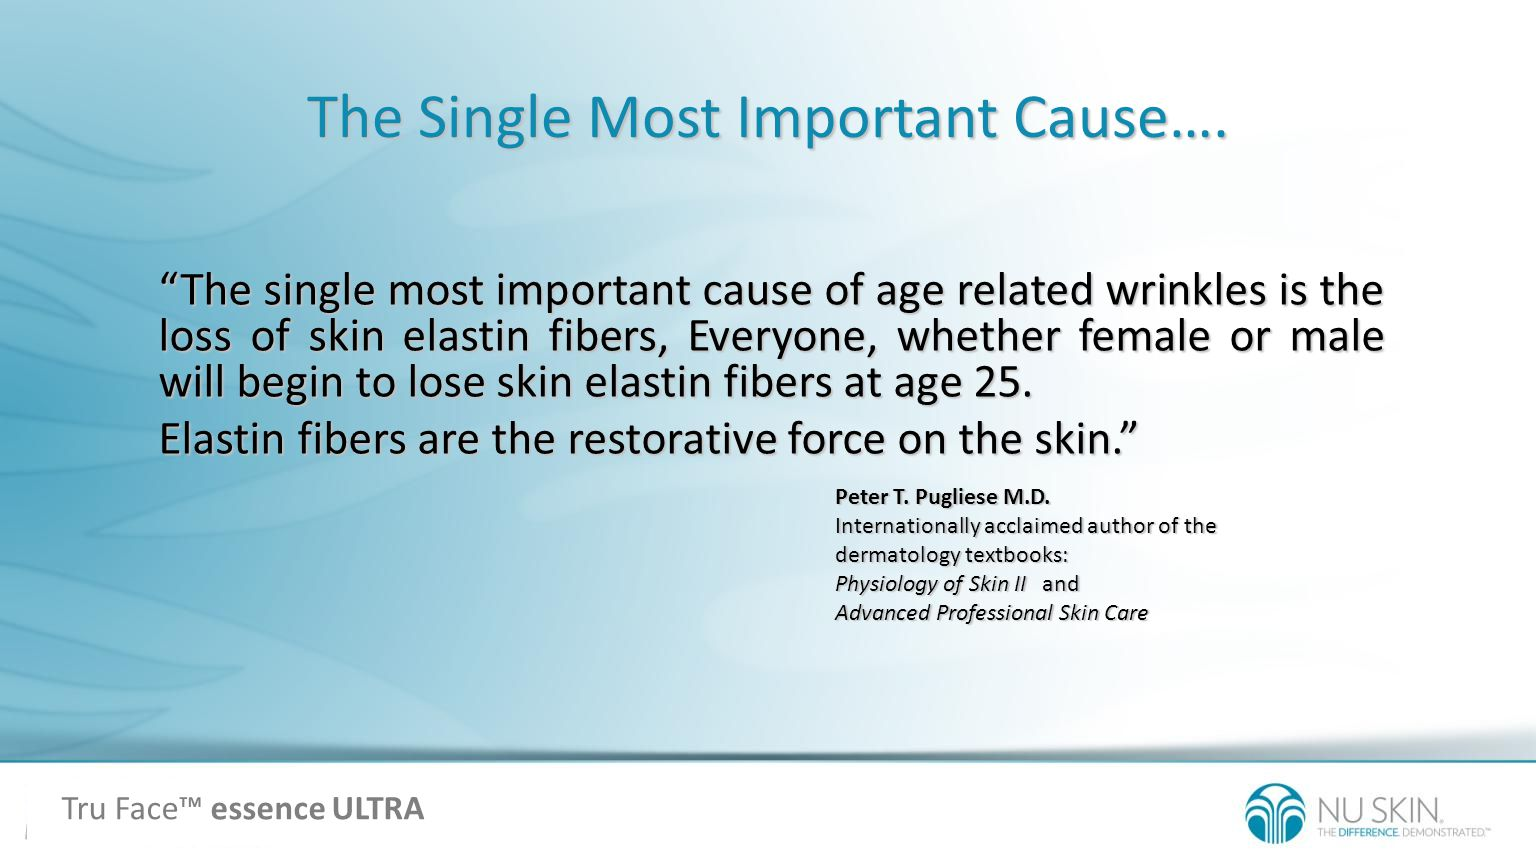 The Single Most Important Cause…. Peter T. Pugliese M.D. Internationally acclaimed author of the dermatology textbooks: Physiology of Skin II and Adva